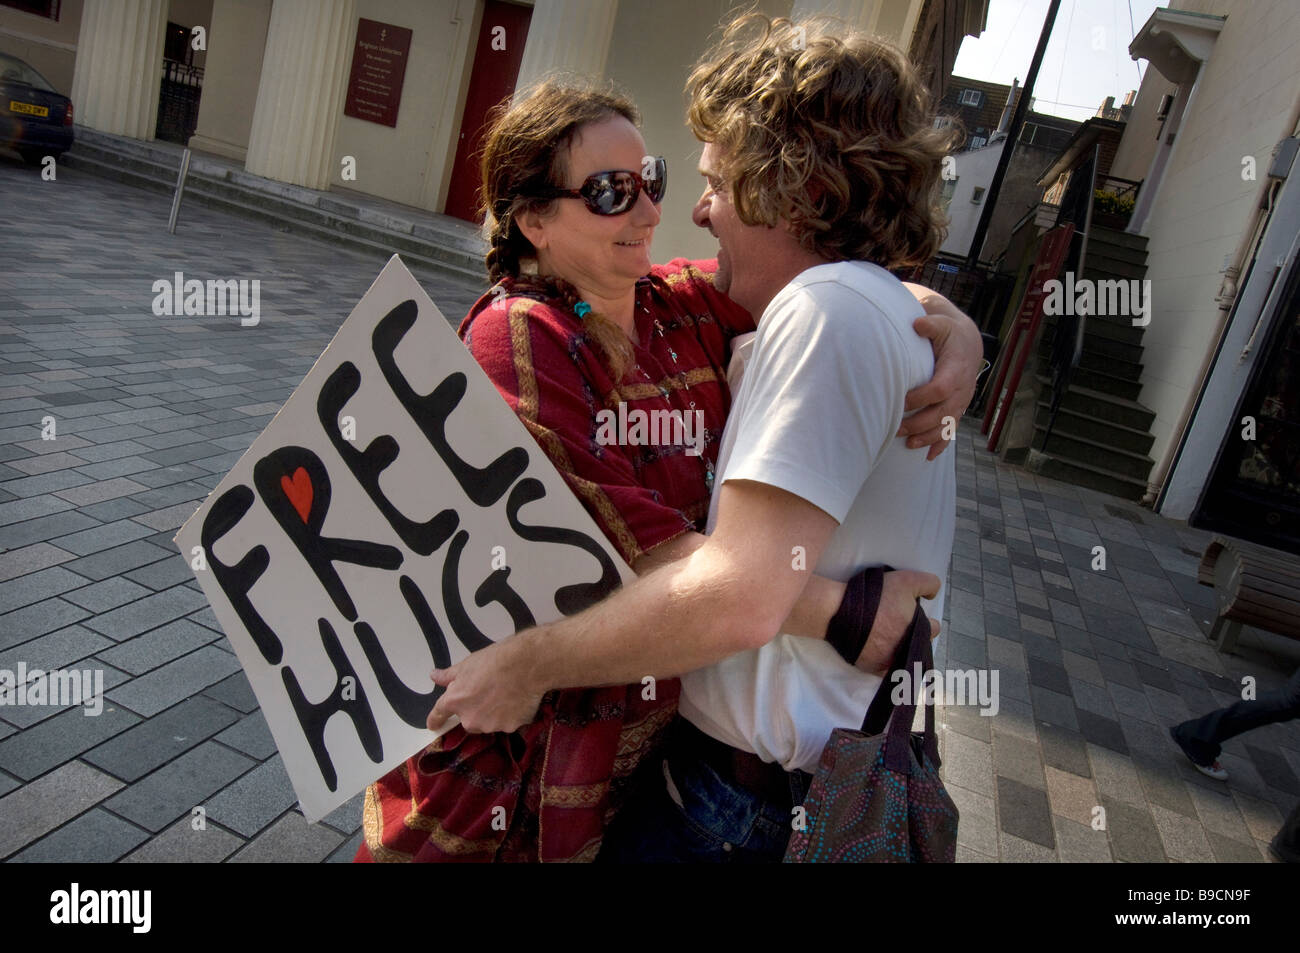 A young couple give each other a spontaneous hug in central Brighton during a 'Free Hugs' event - Stock Image